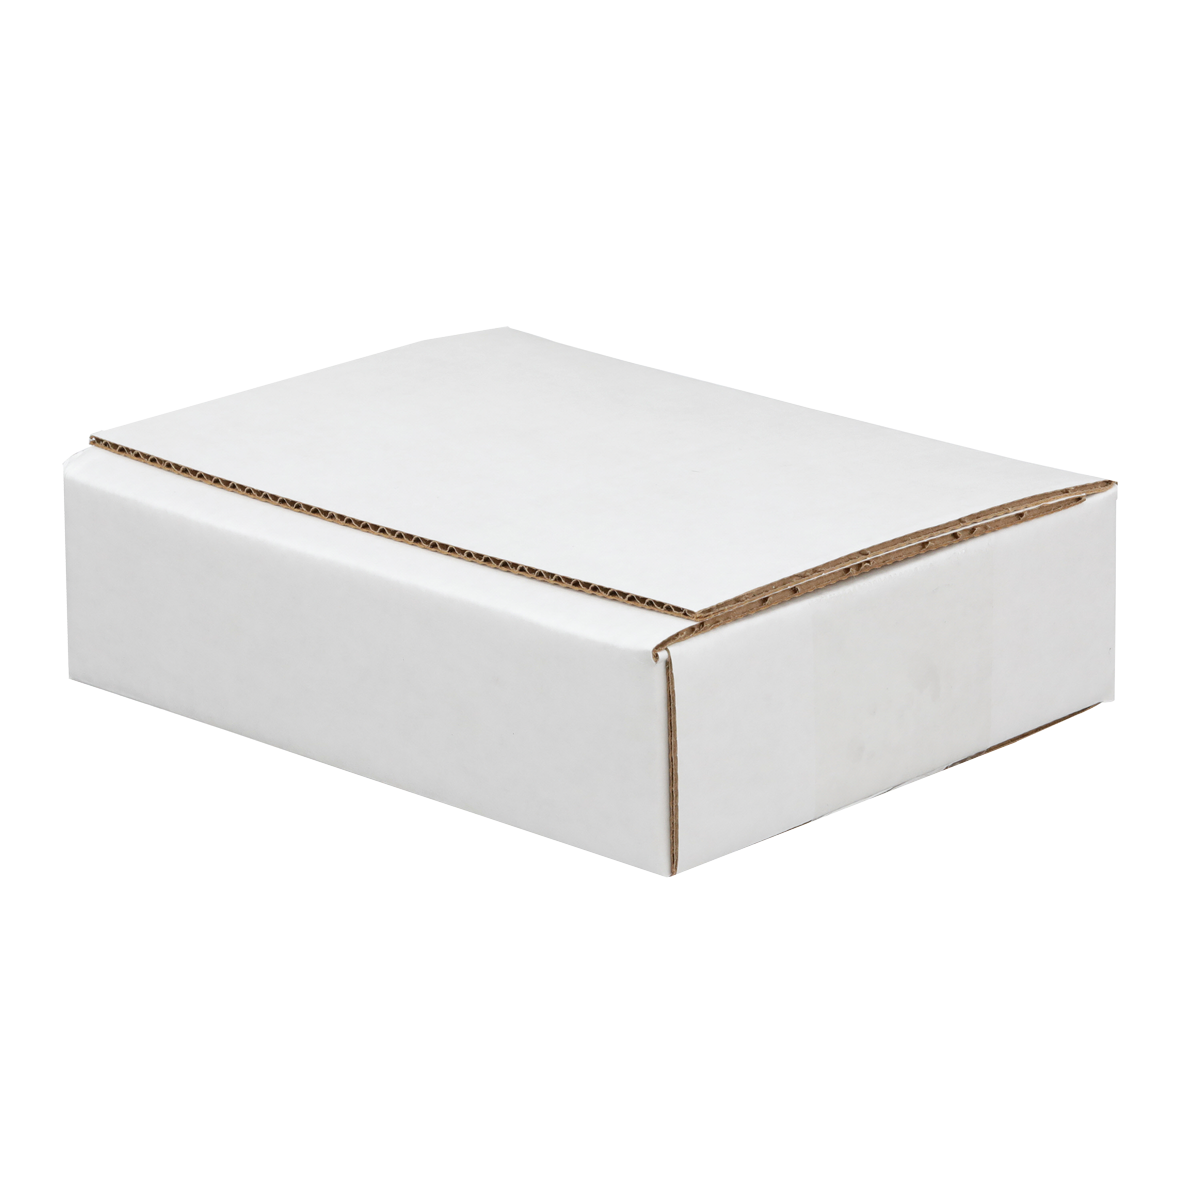 e-cube white corrugated box